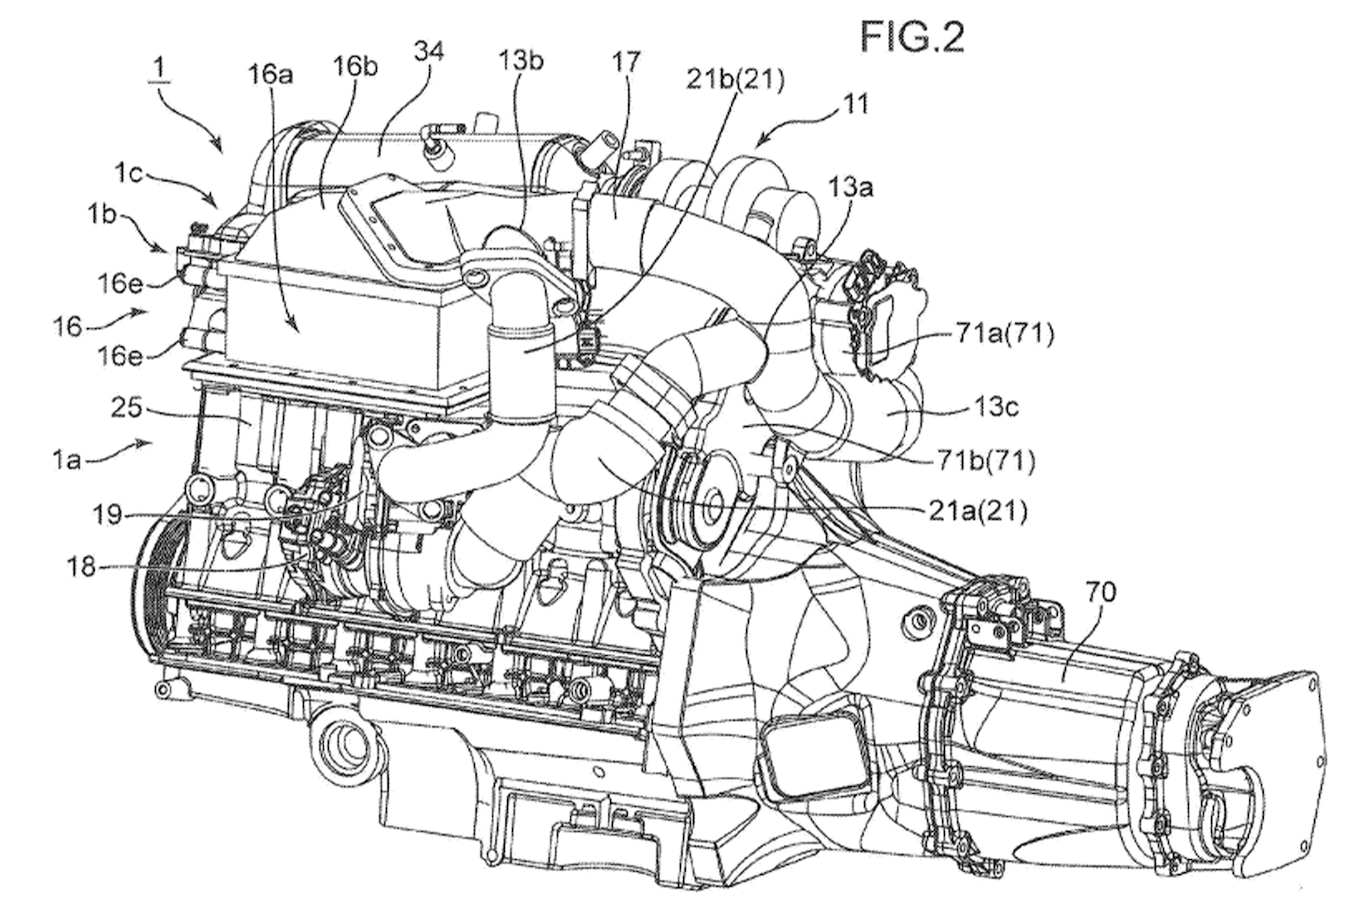 Mazda Patents Triple Charged Engine With Electric